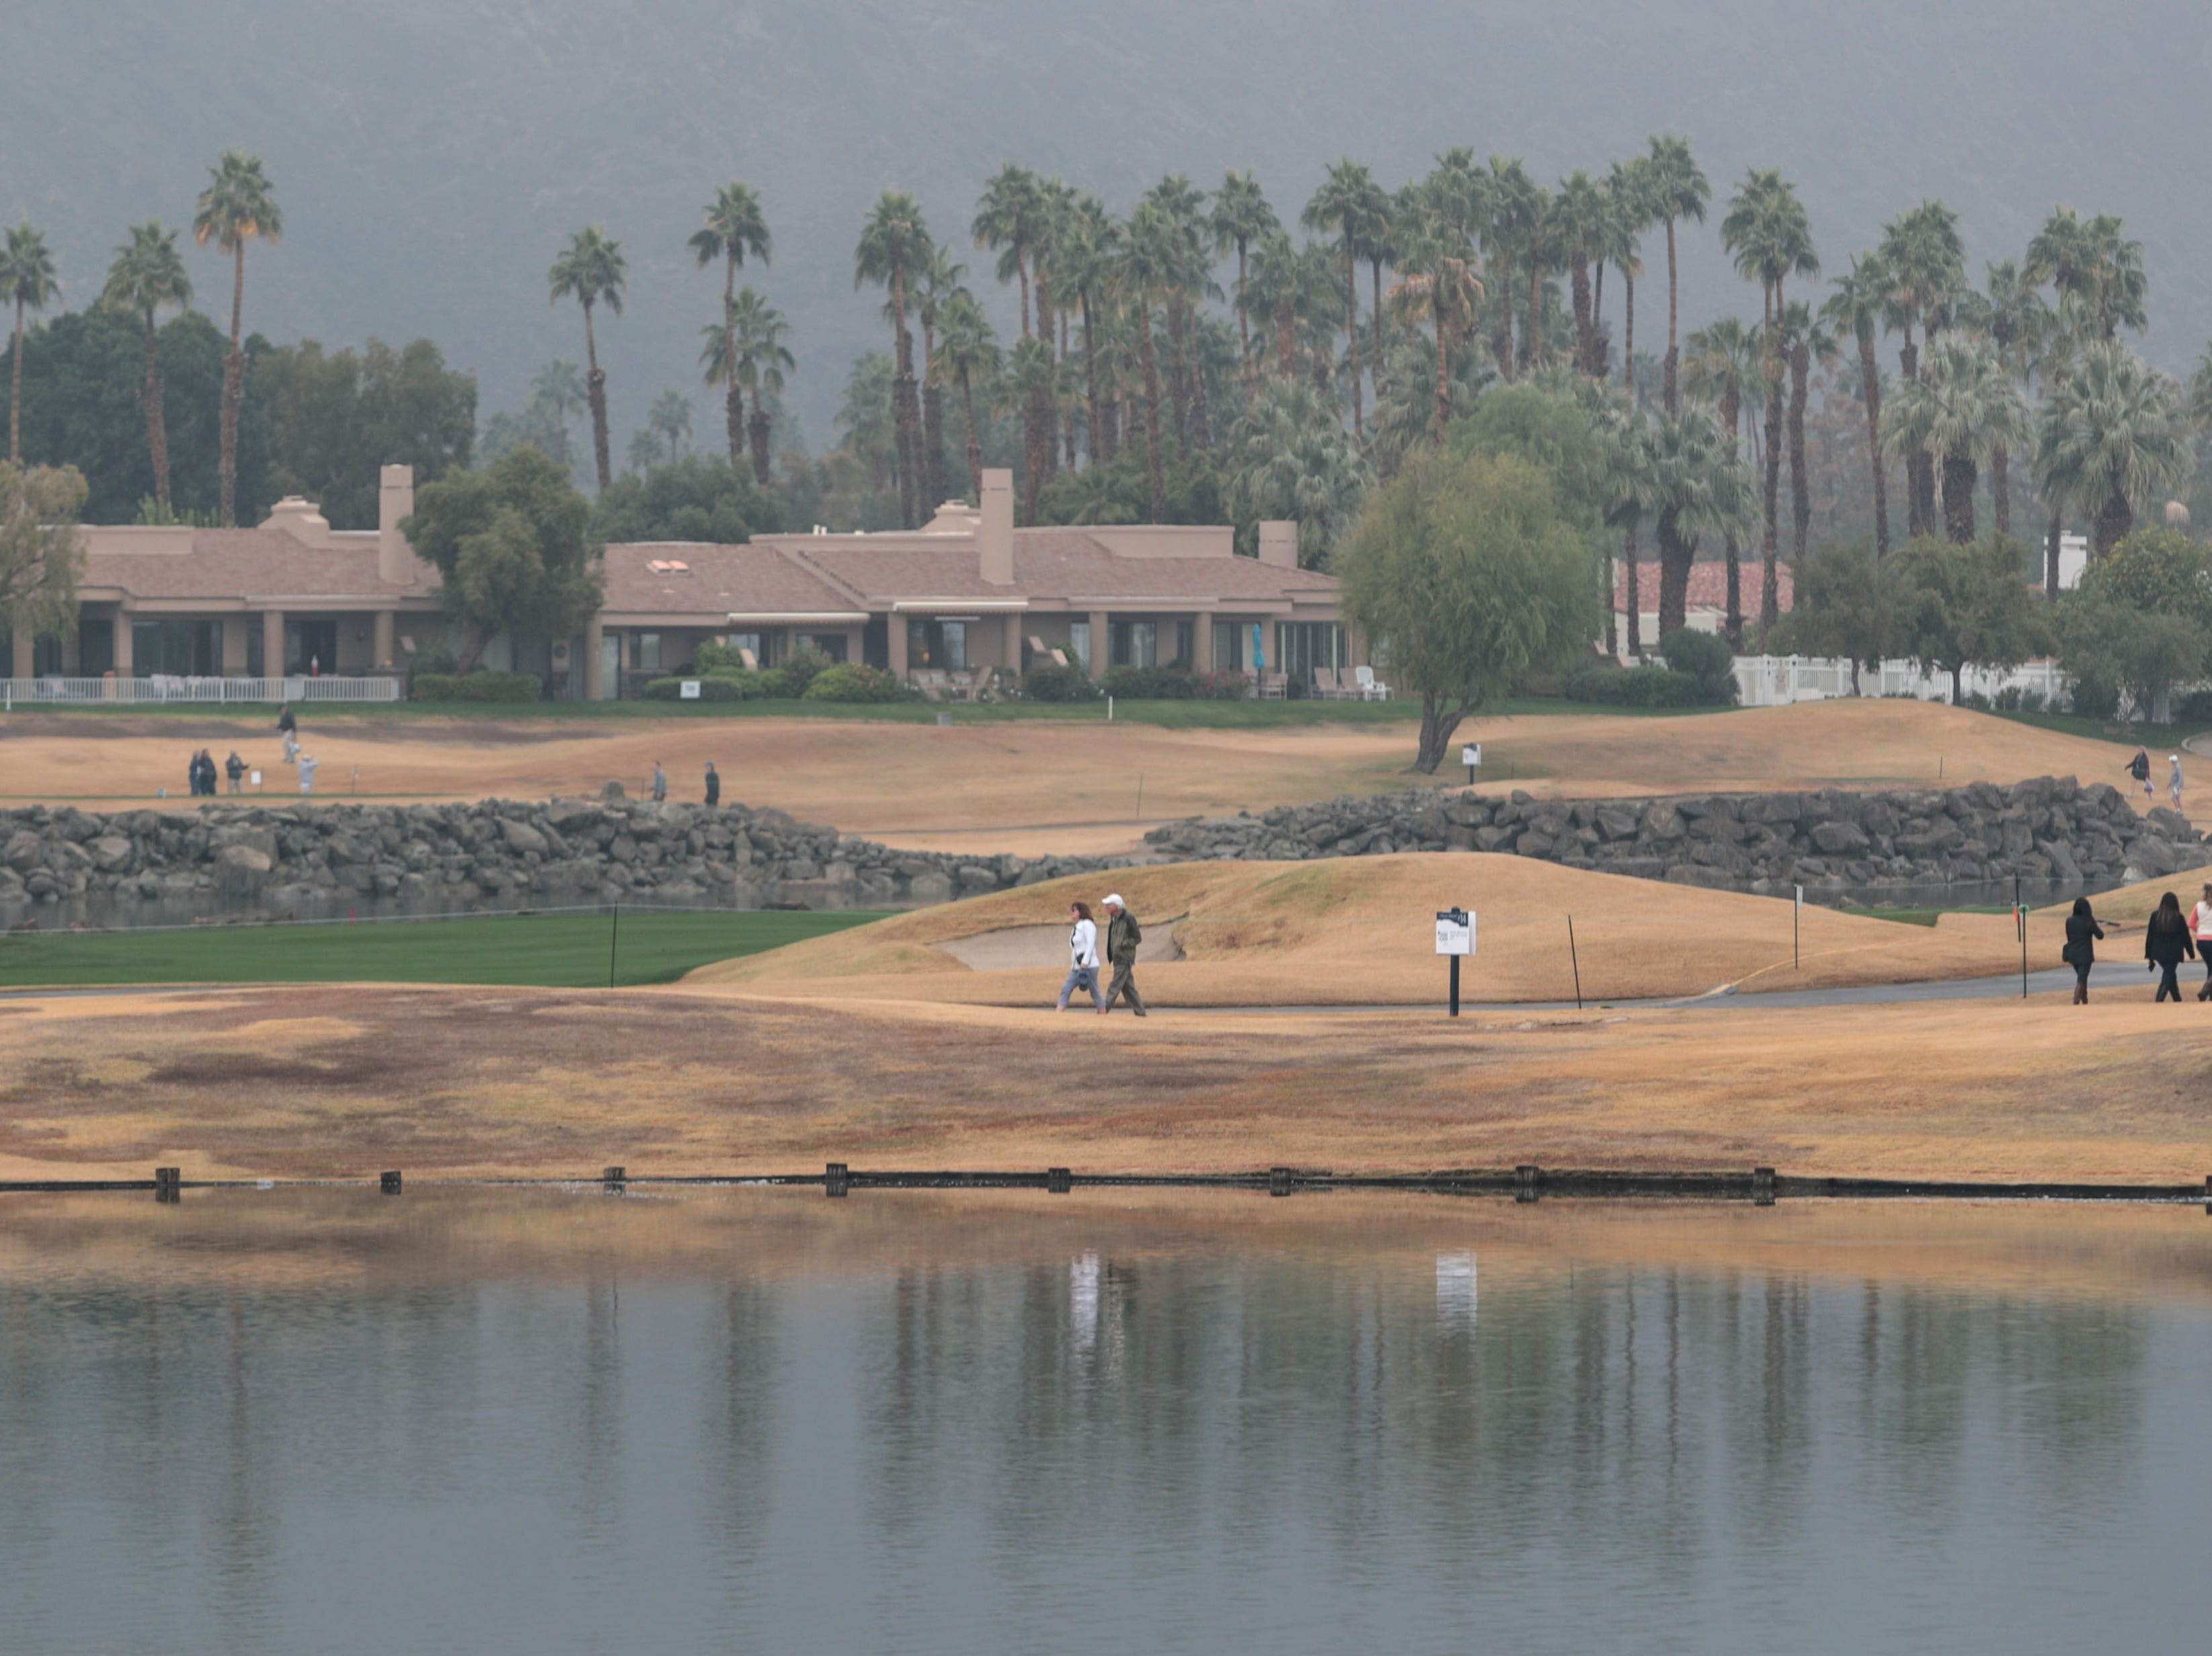 Spectators wander the Stadium Course during the Bob Hope Legacy Pro-Am portion of the Desert Classic on Wednesday, January 16, 2019 in La Quinta.